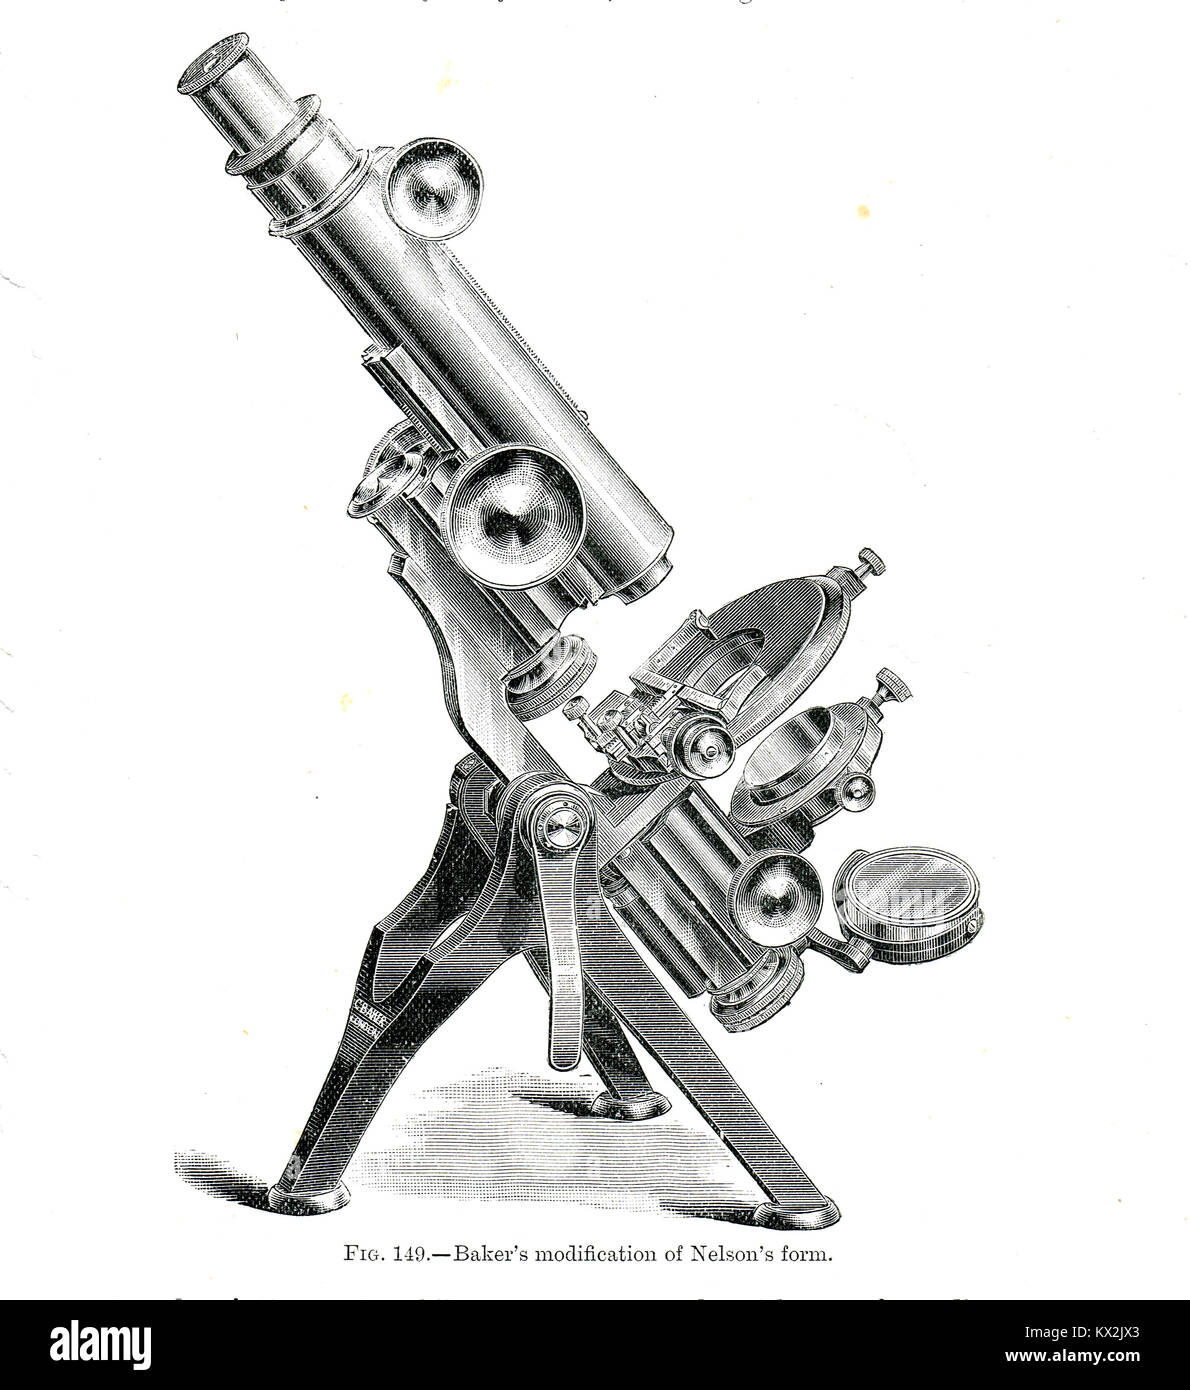 Baker's modification of Nelson's form - Stock Image